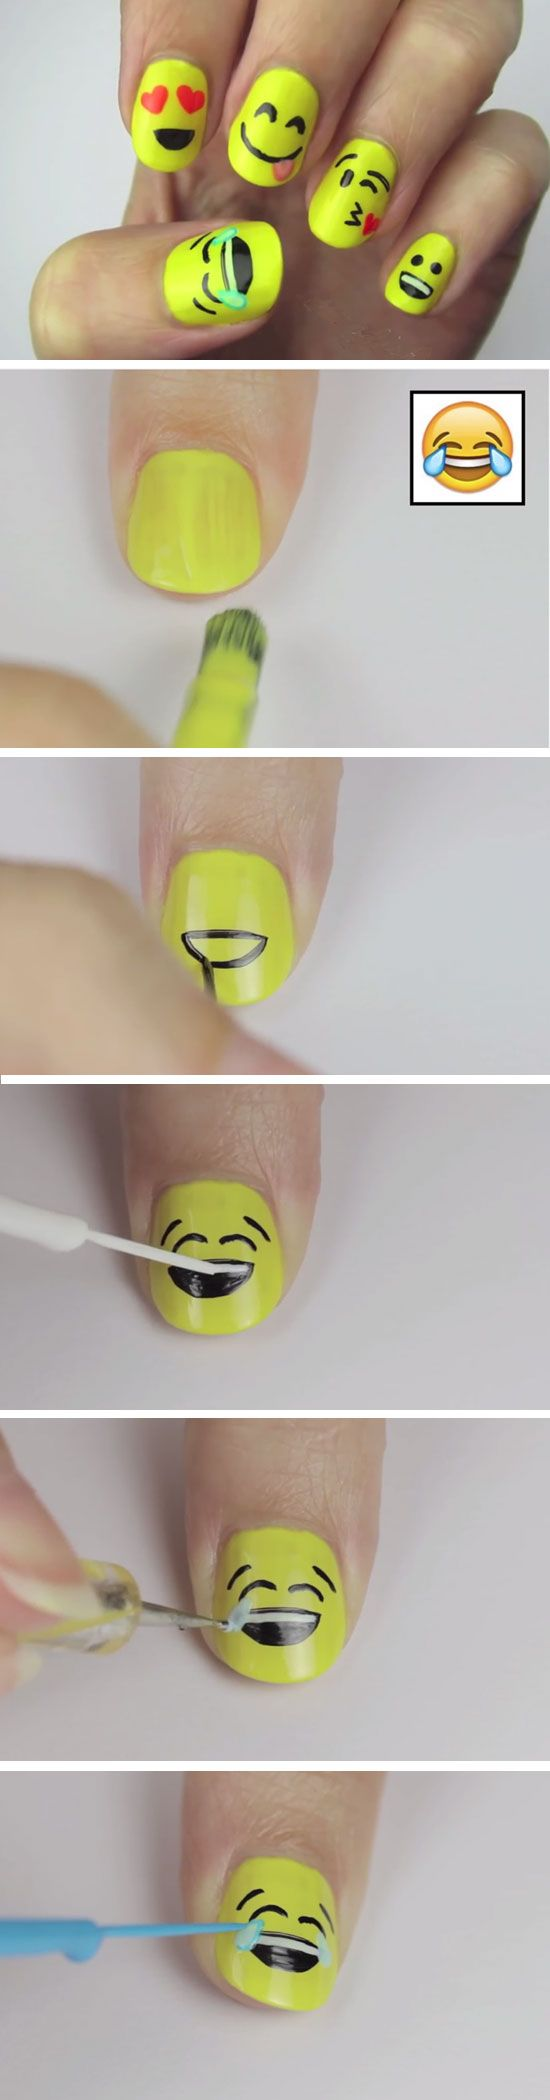 Emoji Nail Art | DIY Back to School Nails for Kids: